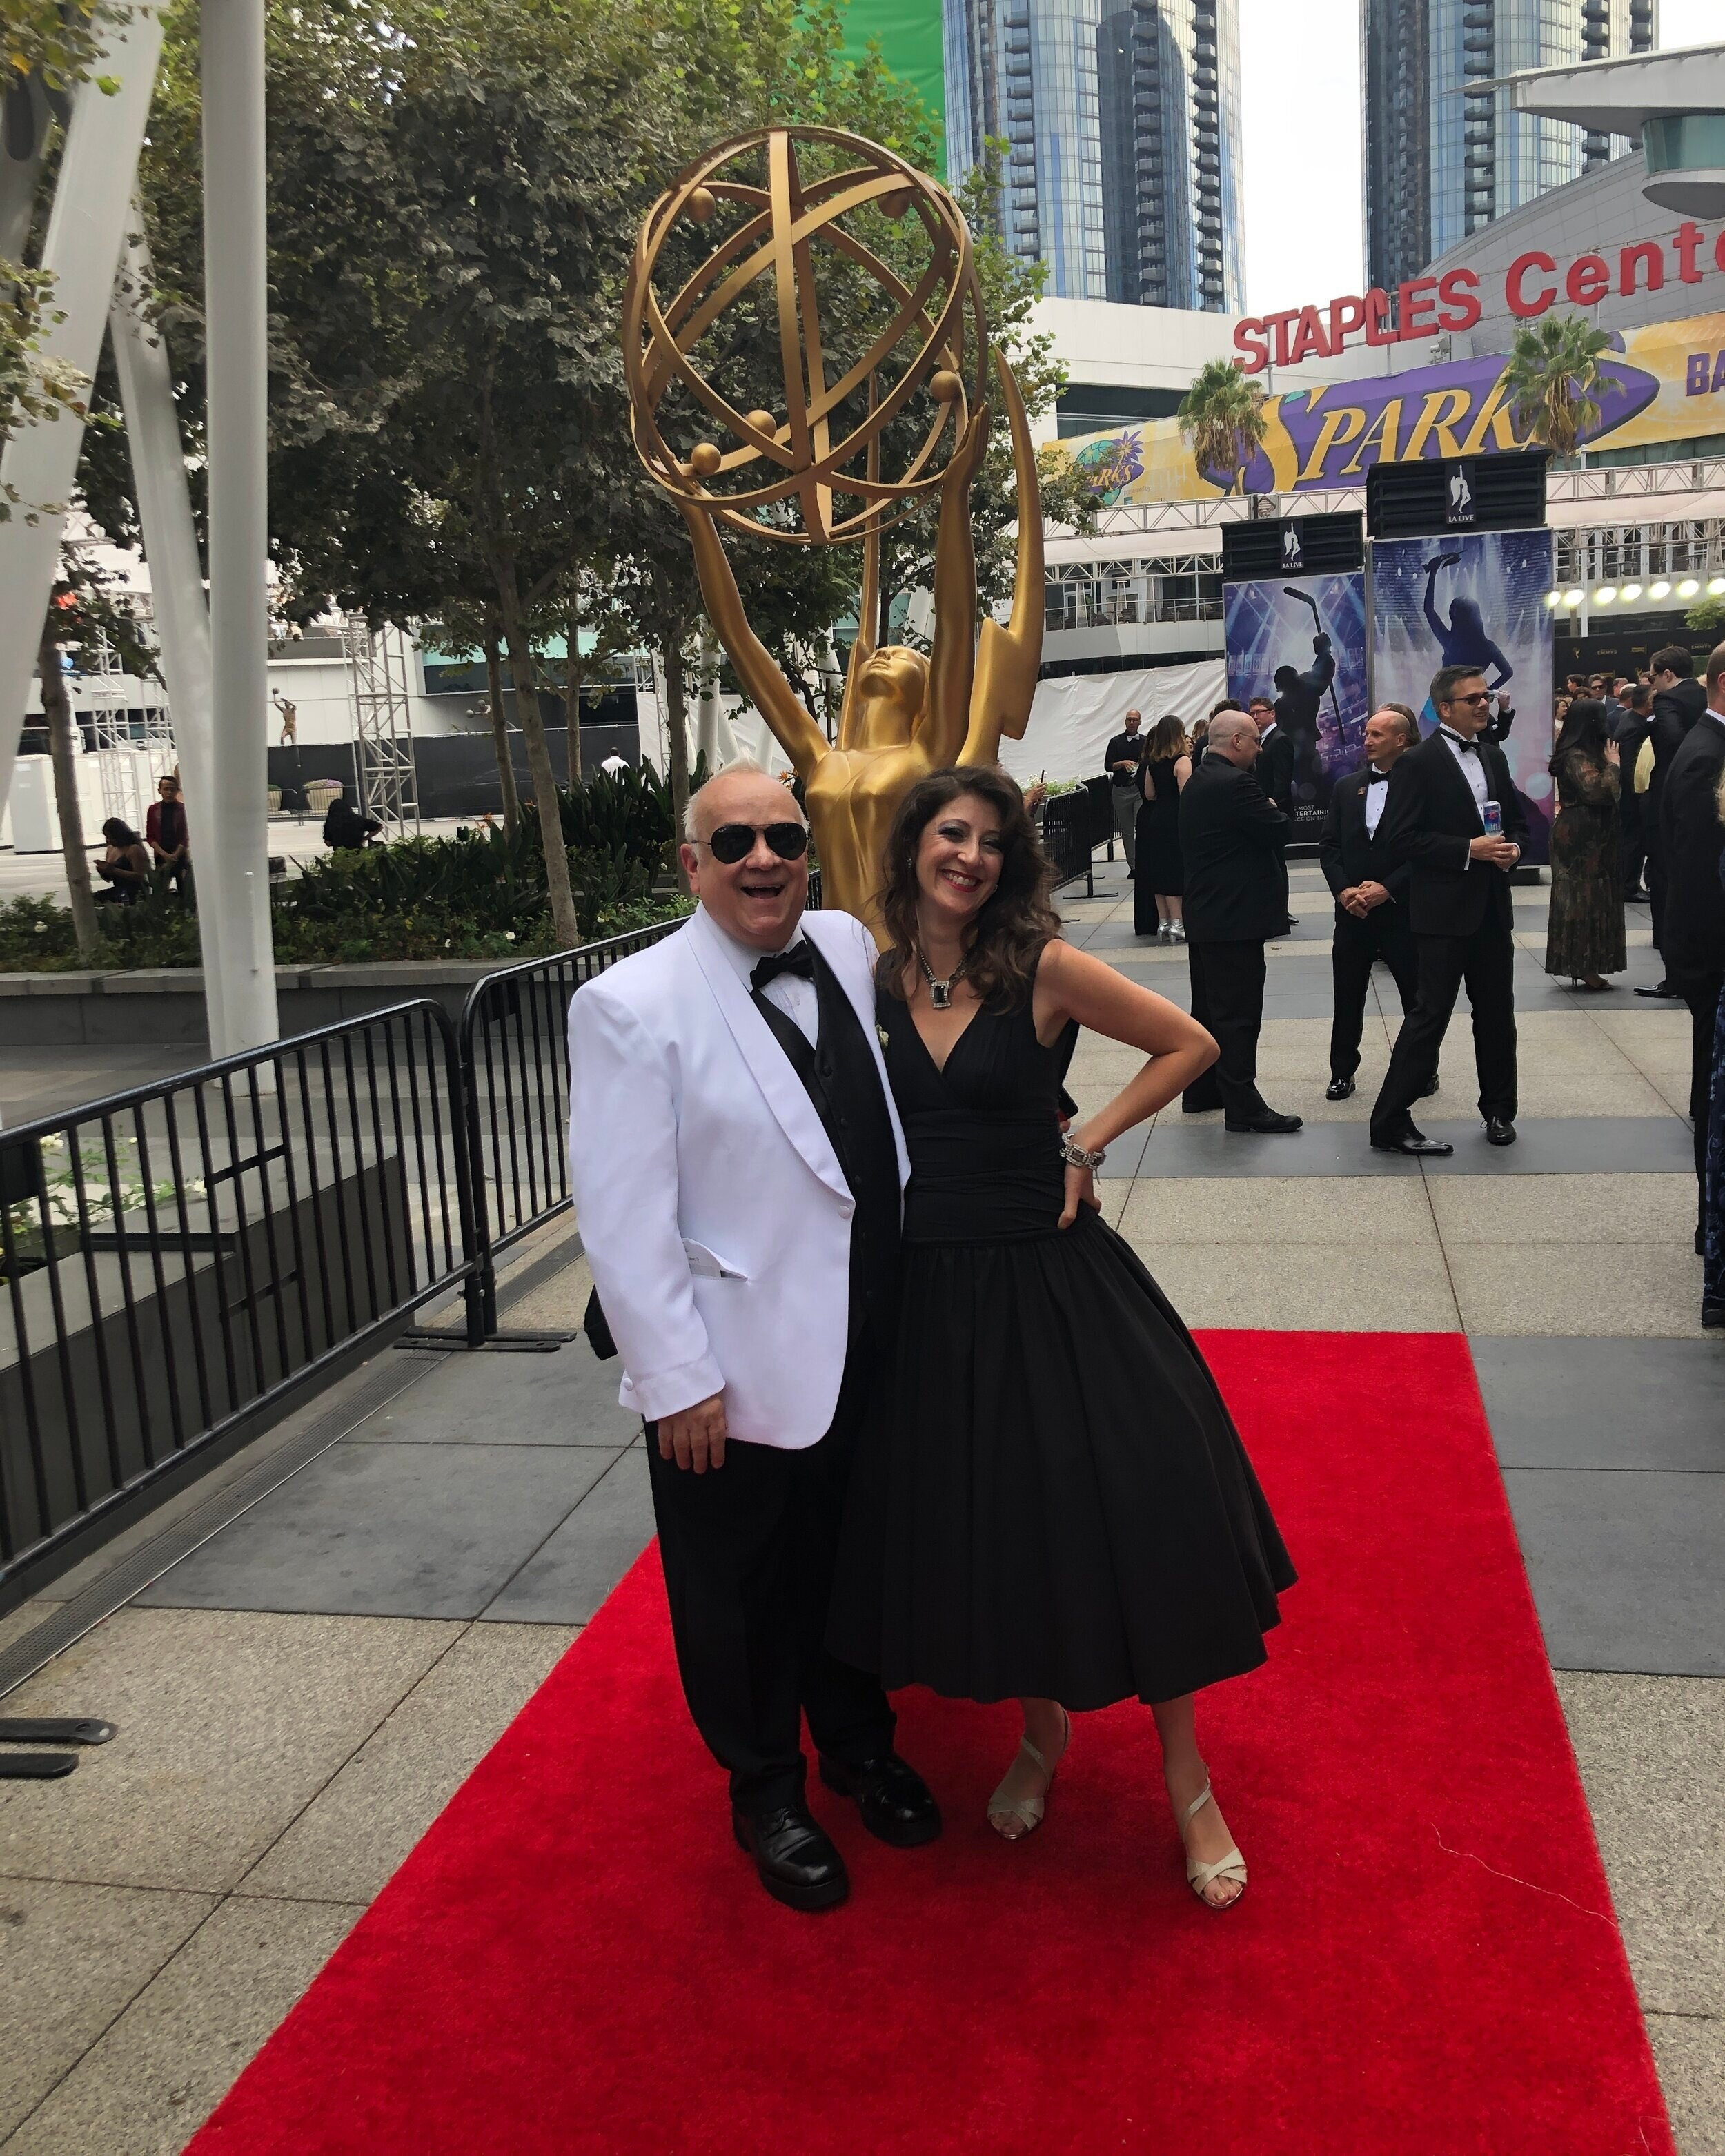 Walking the red carpet in LA.